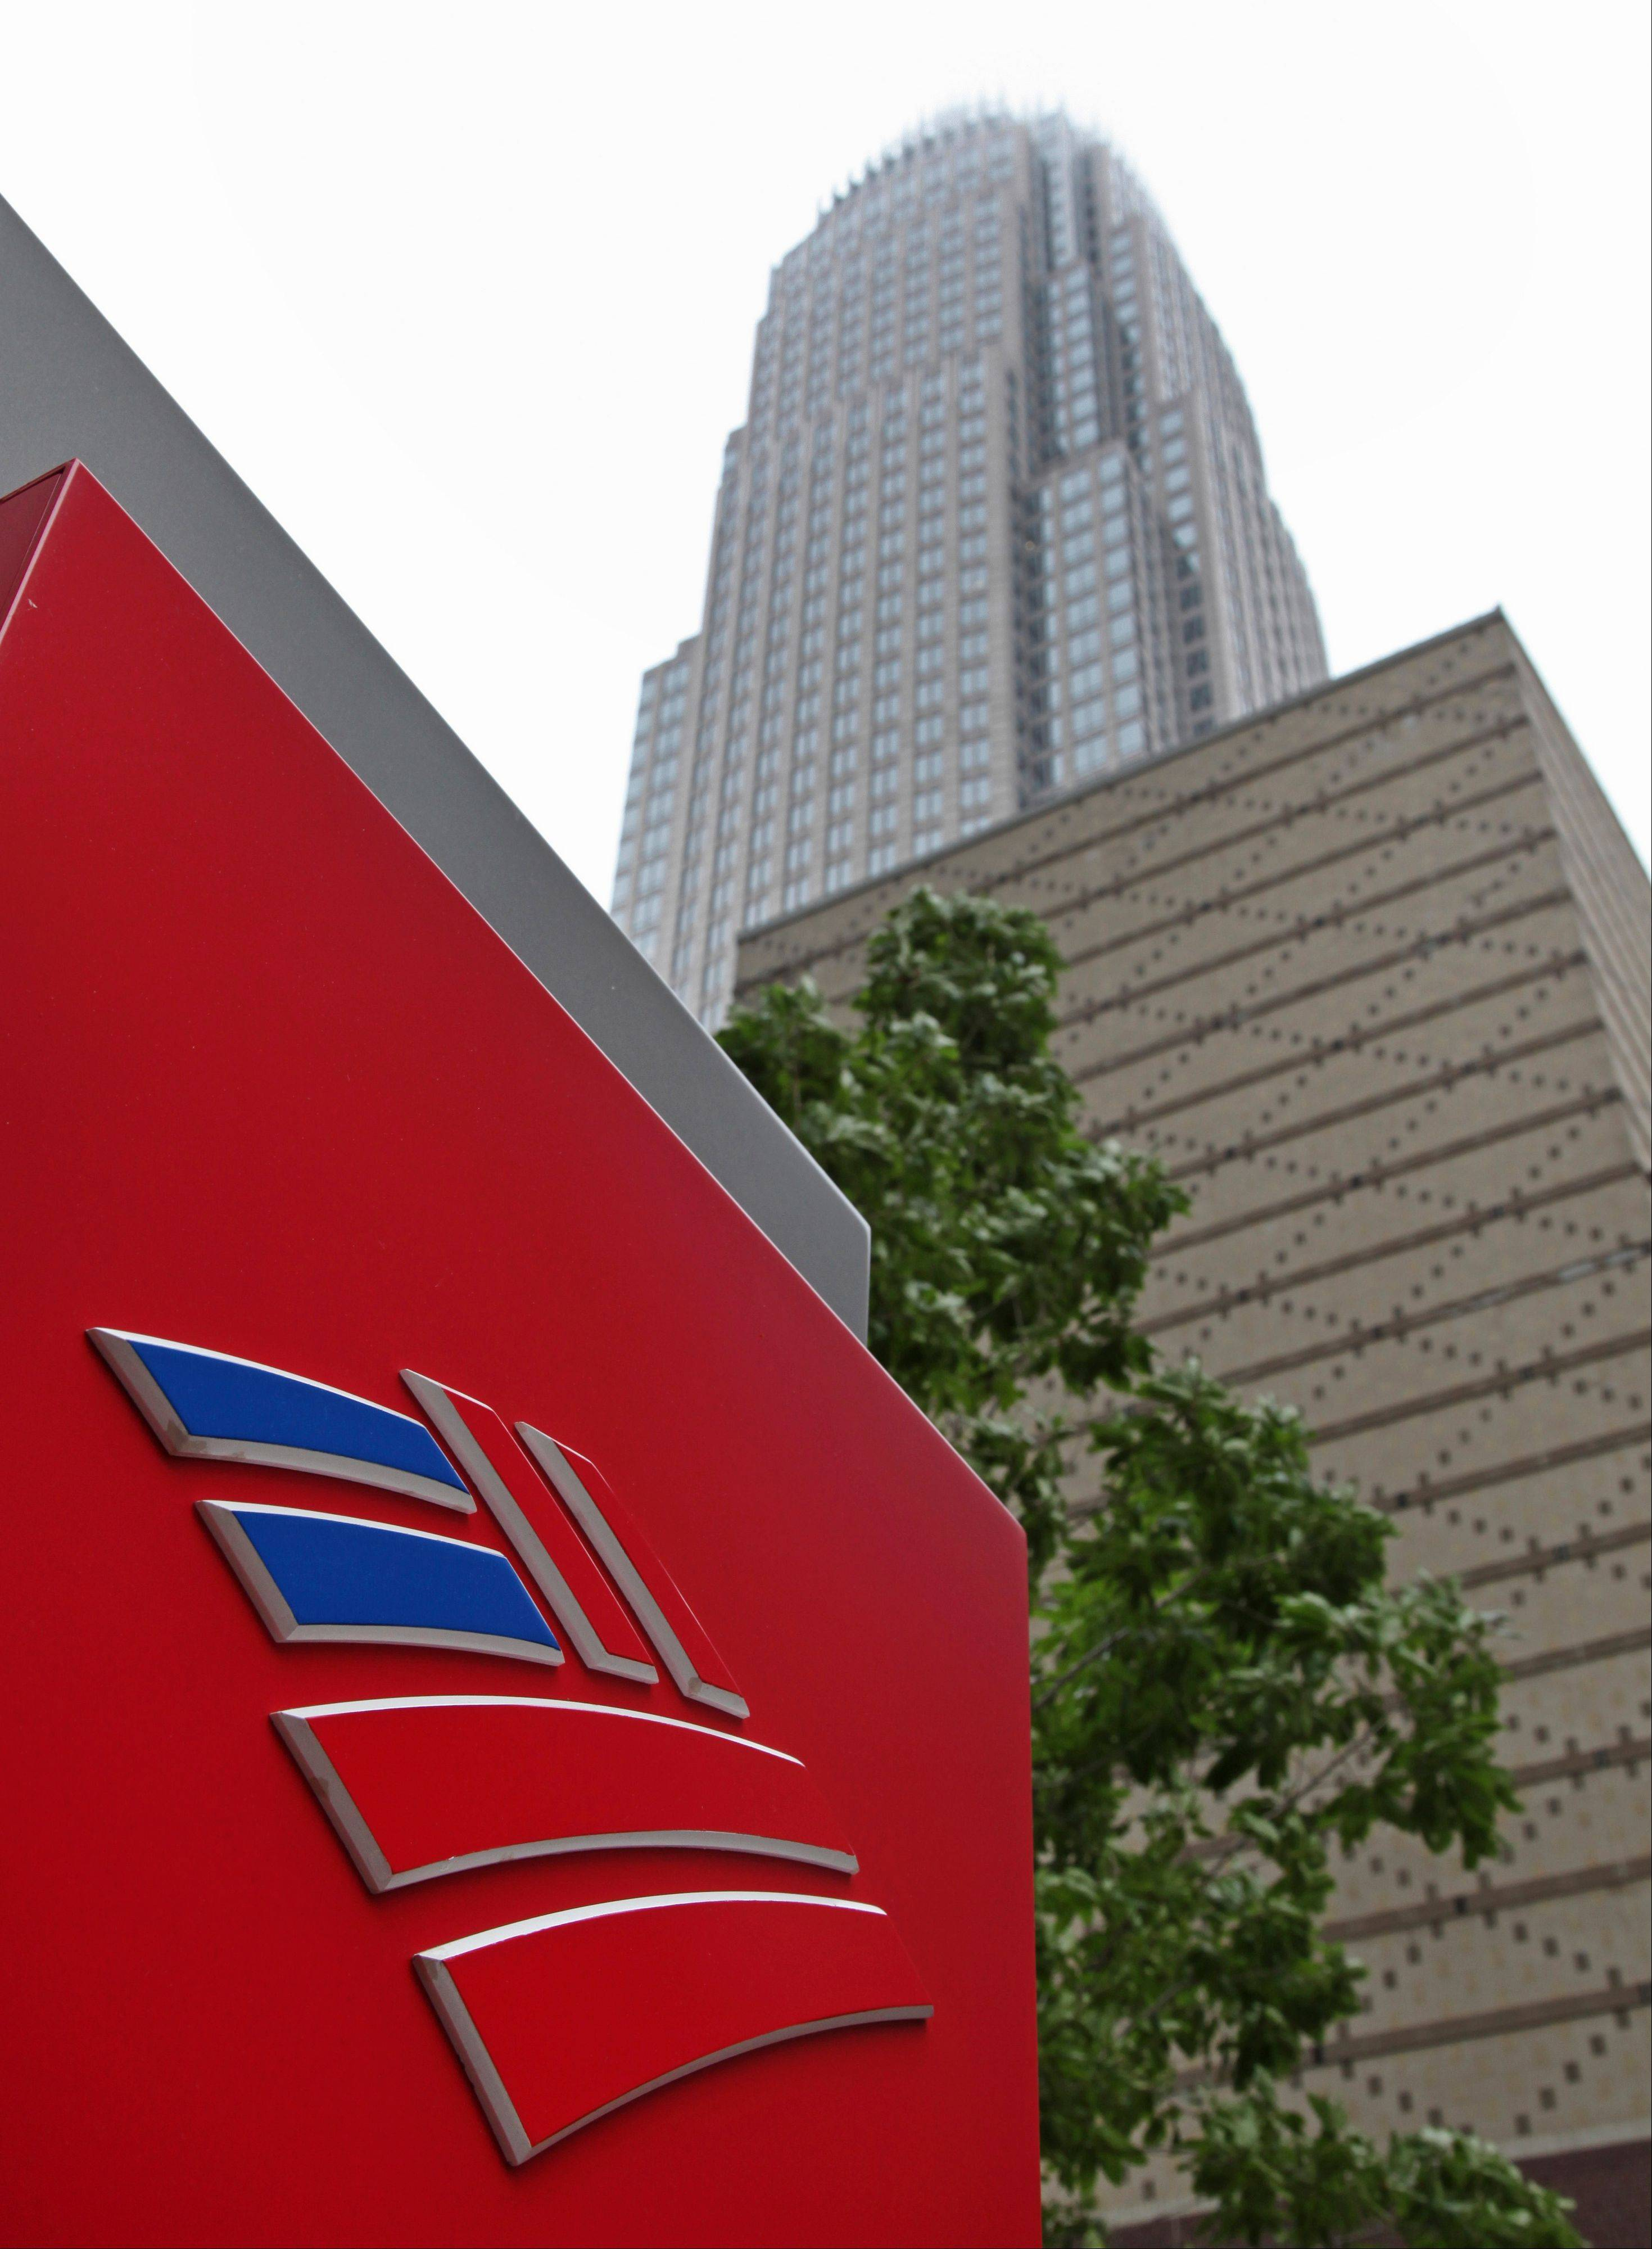 Associated Press/April 19, 2012 Bank of America's corporate headquarters in Charlotte, N.C. Moody's Investors Service lowered the credit ratings on some of the world's biggest banks, including Bank of America, but it had little effect on opening stock prices Friday.